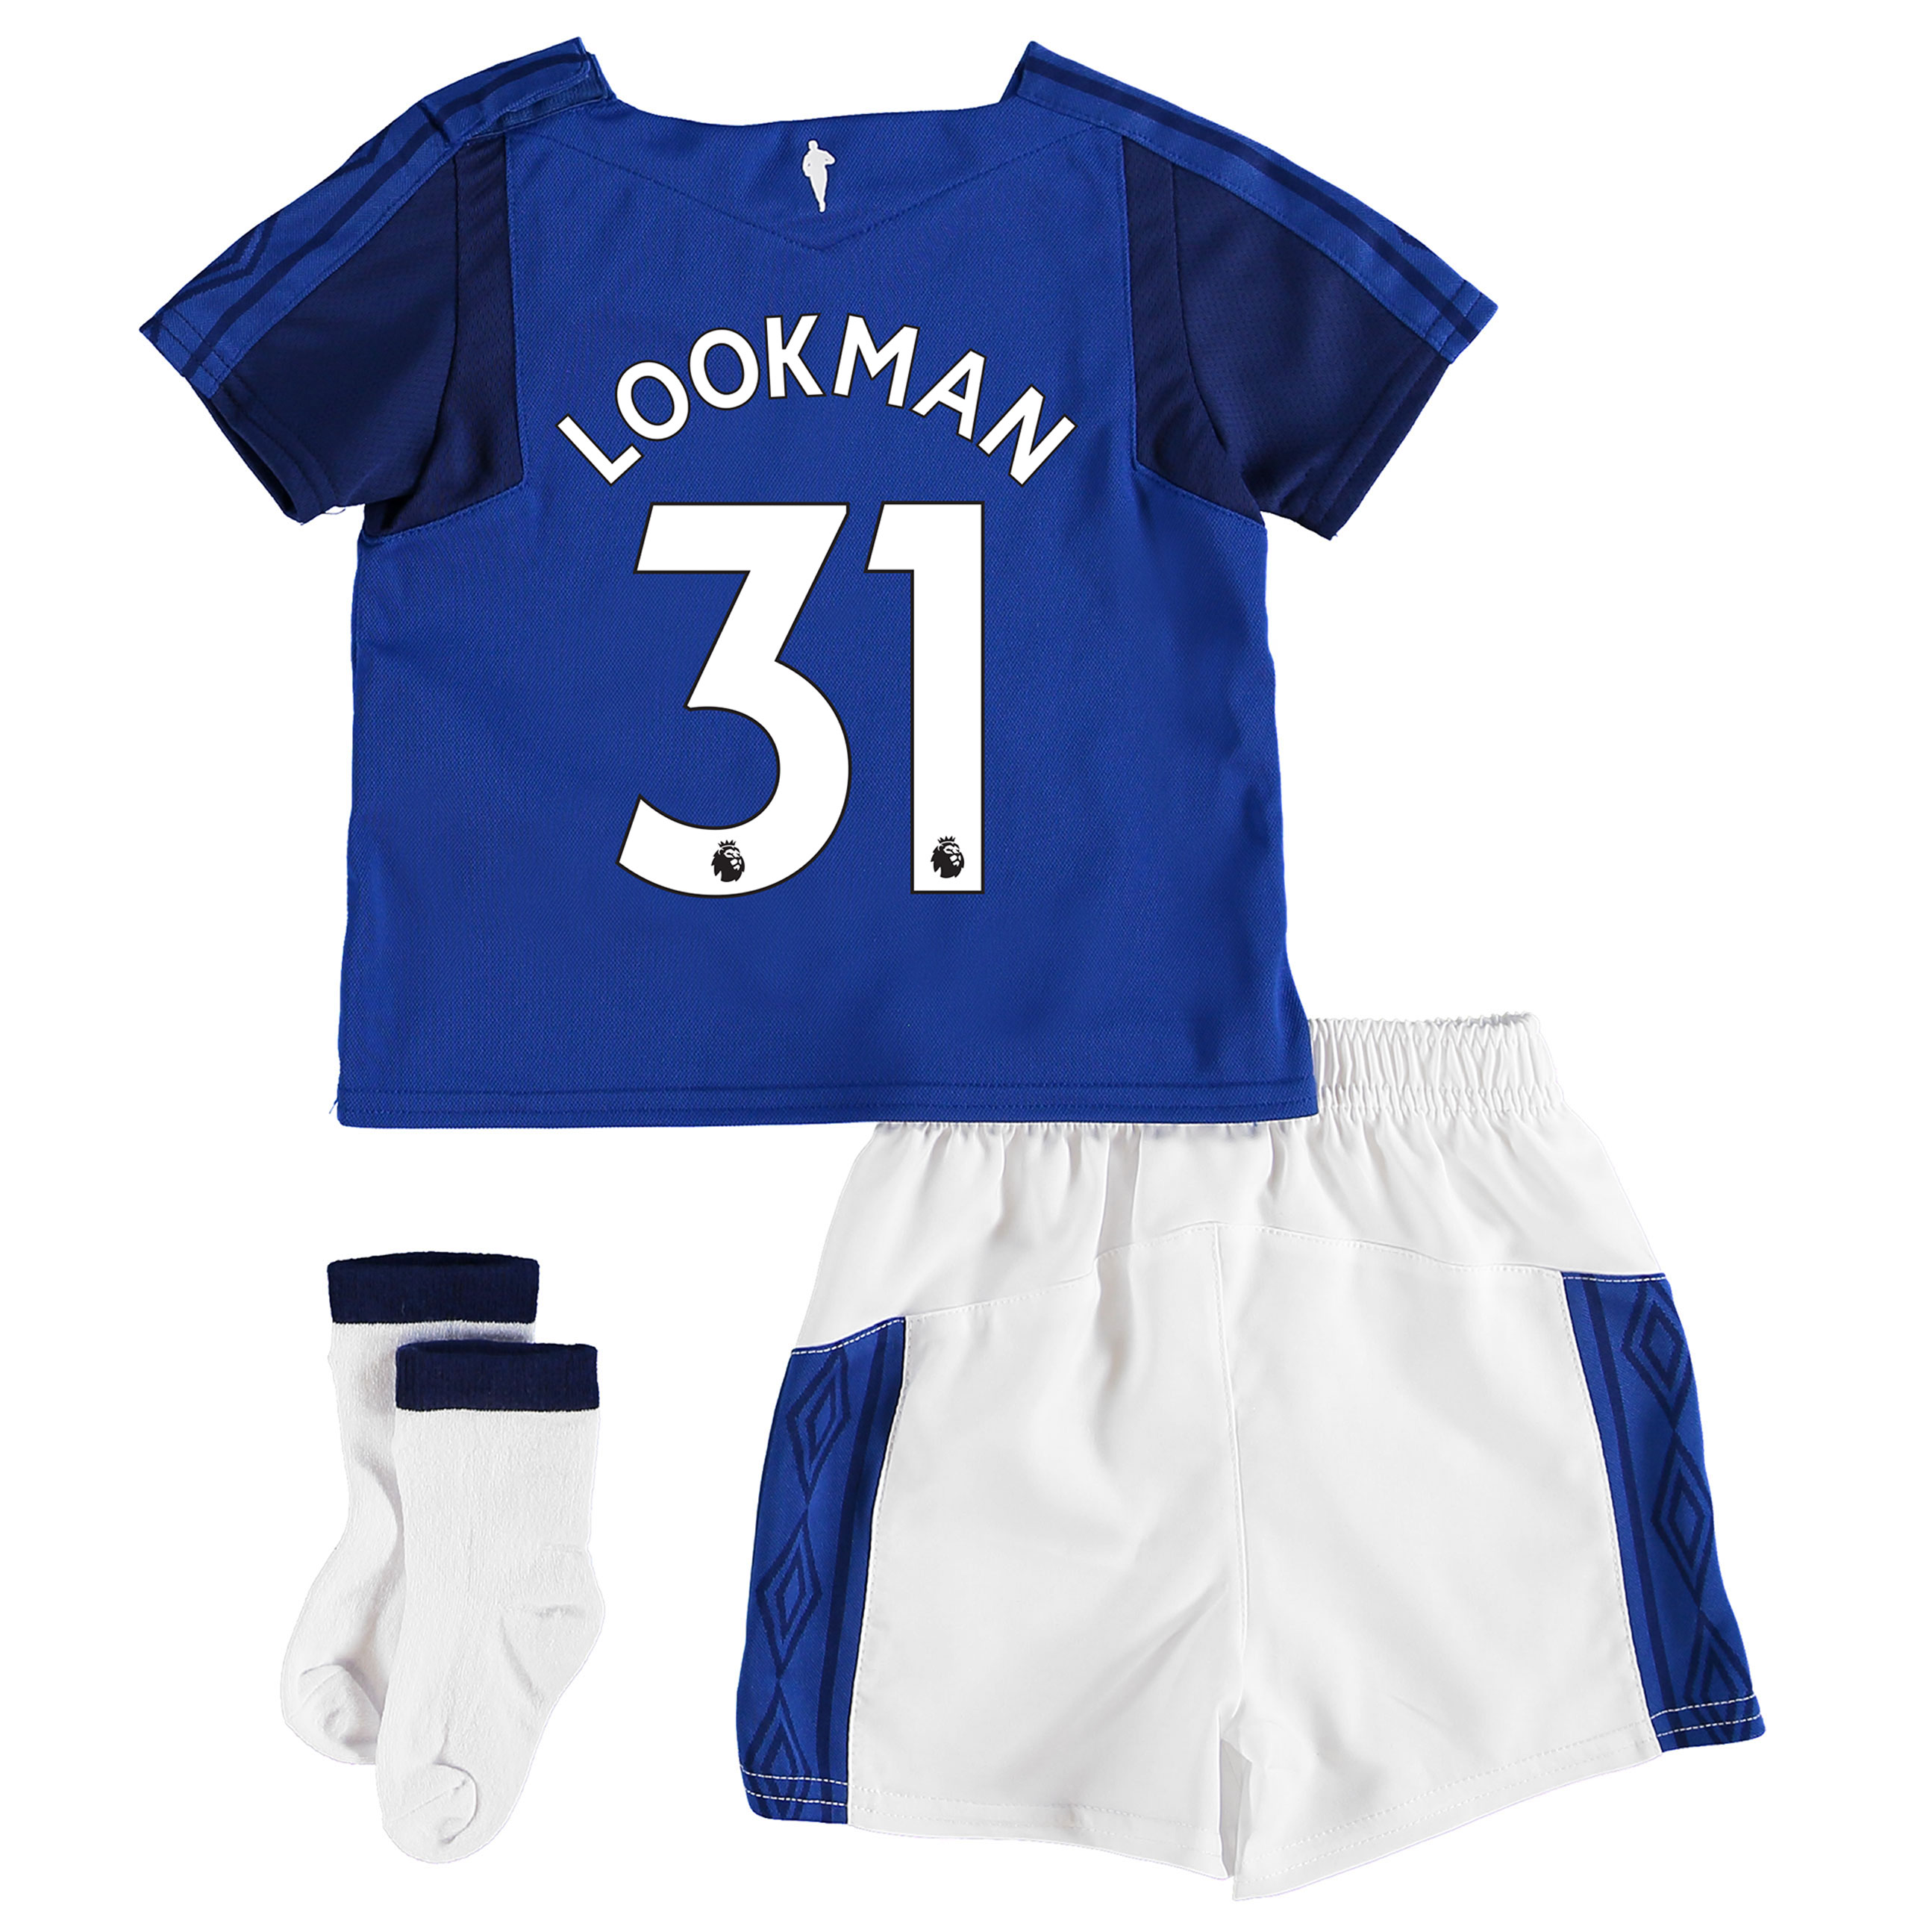 Everton Home Baby Kit 2017/18 with Lookman 31 printing